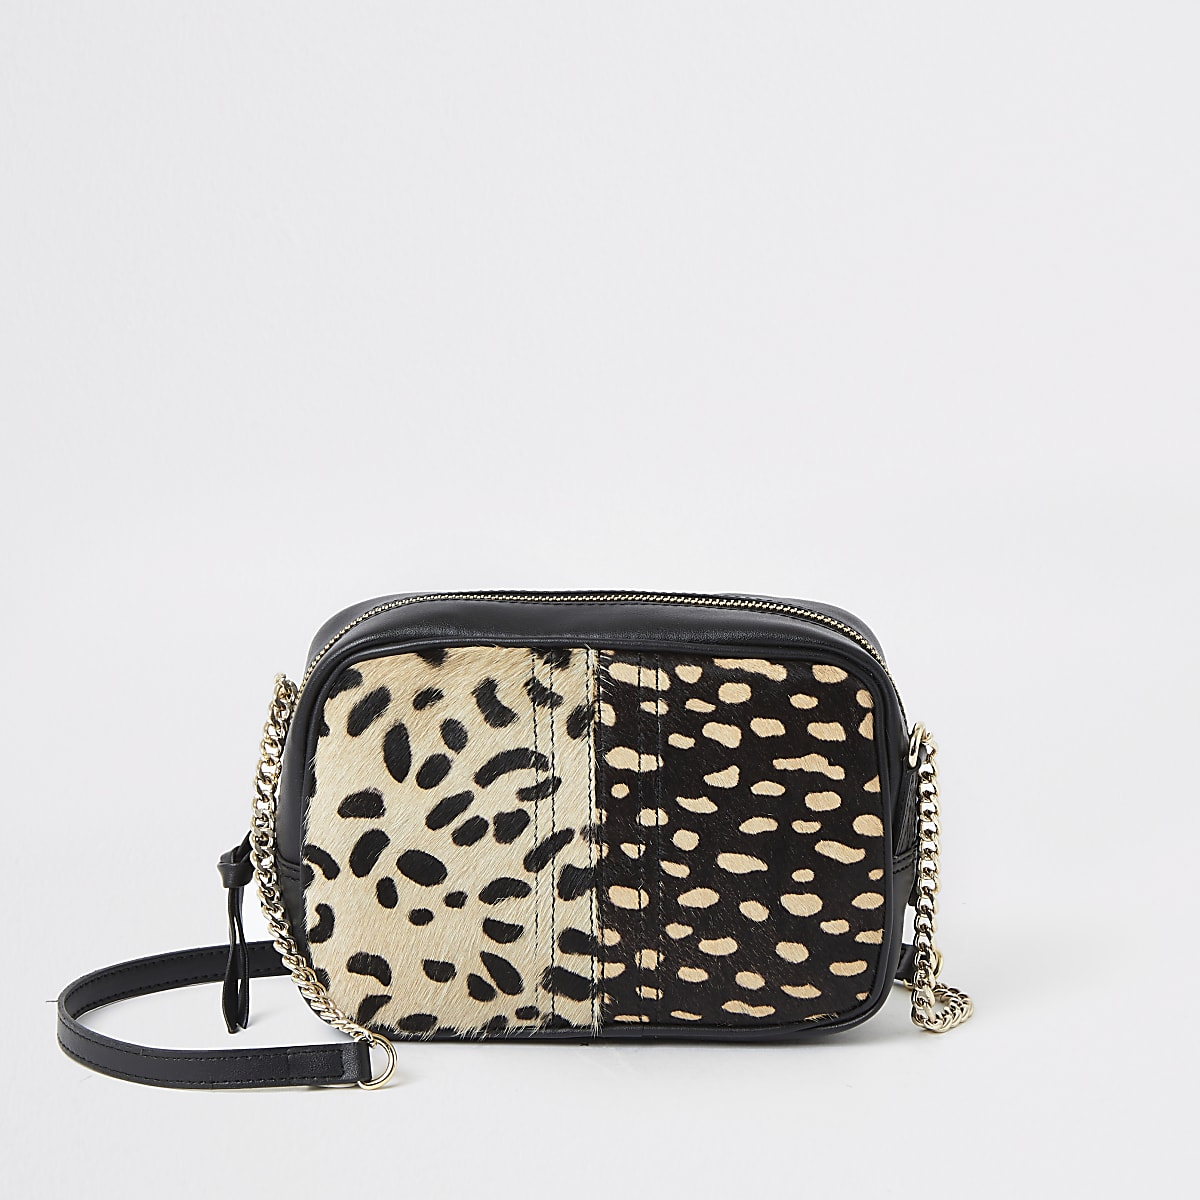 Cream animal print cross body bag